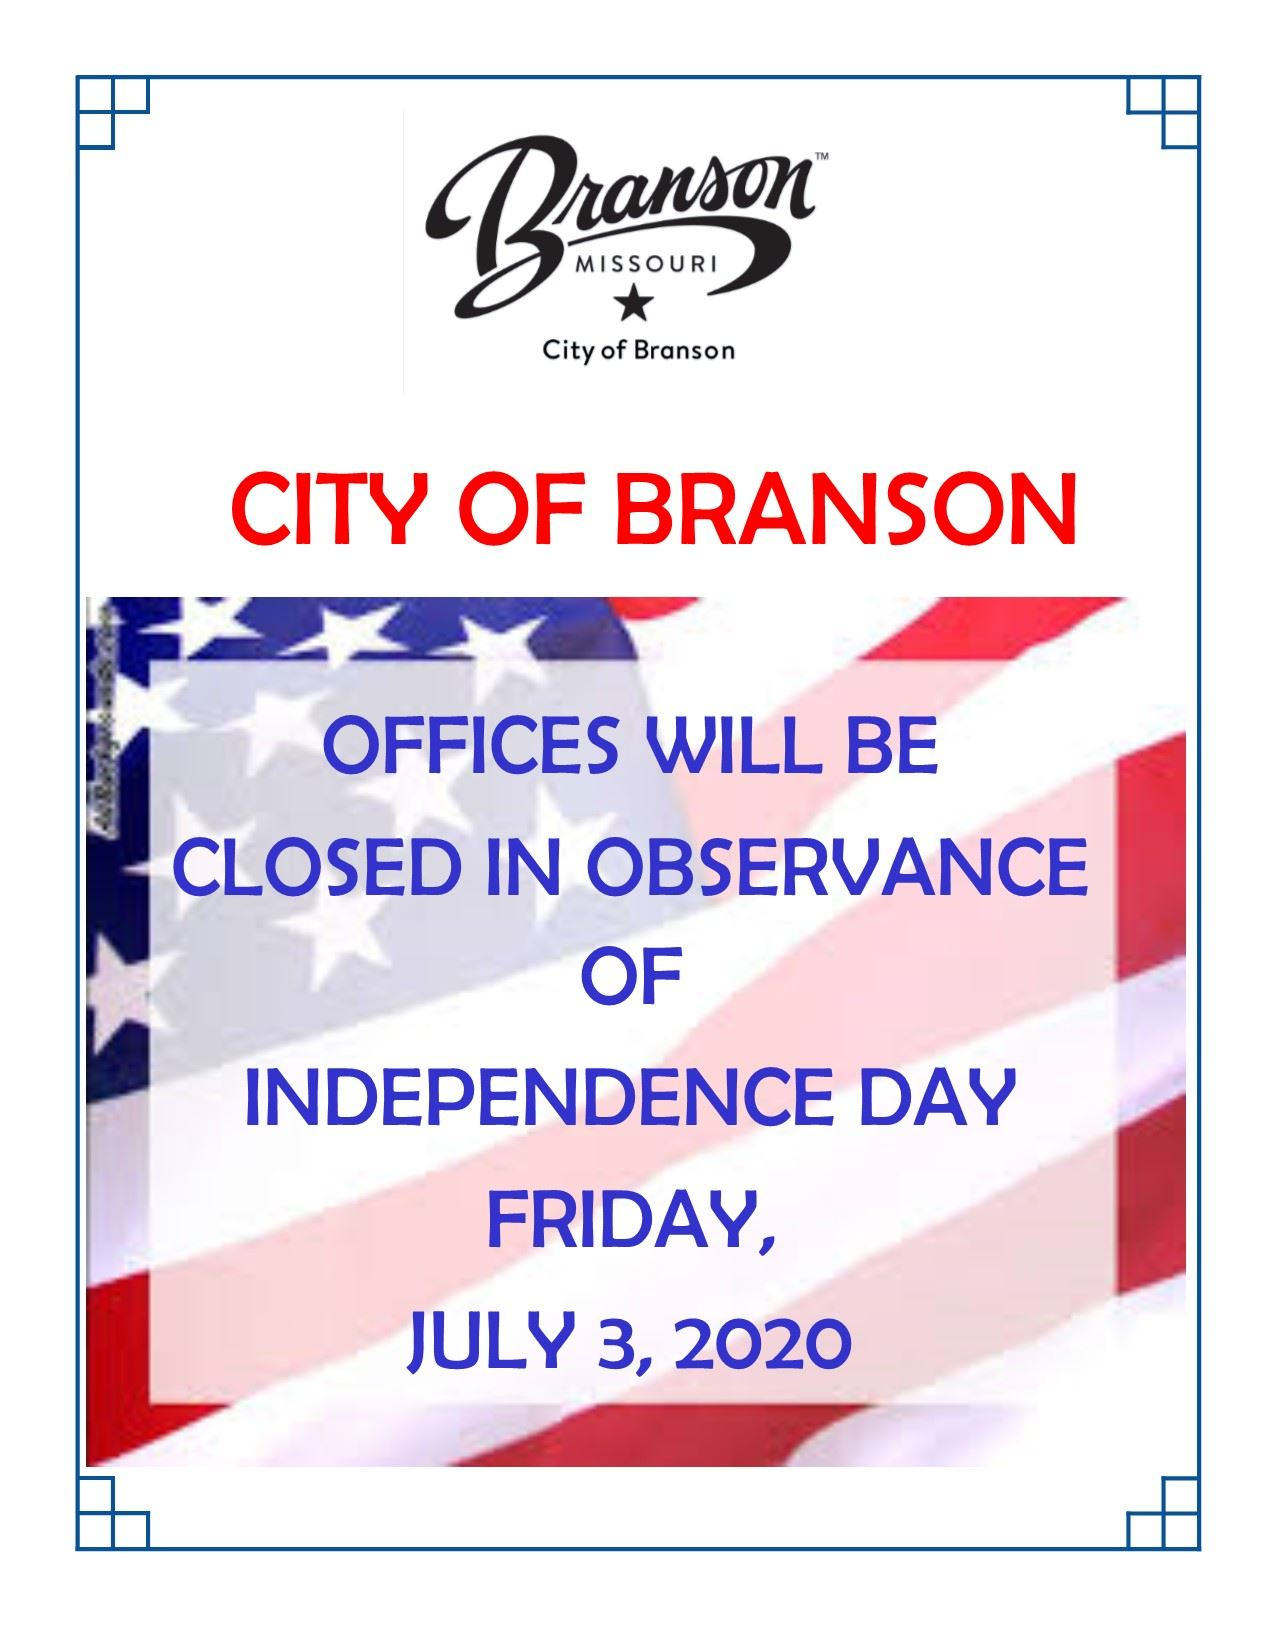 City Closed Independence Day 2020